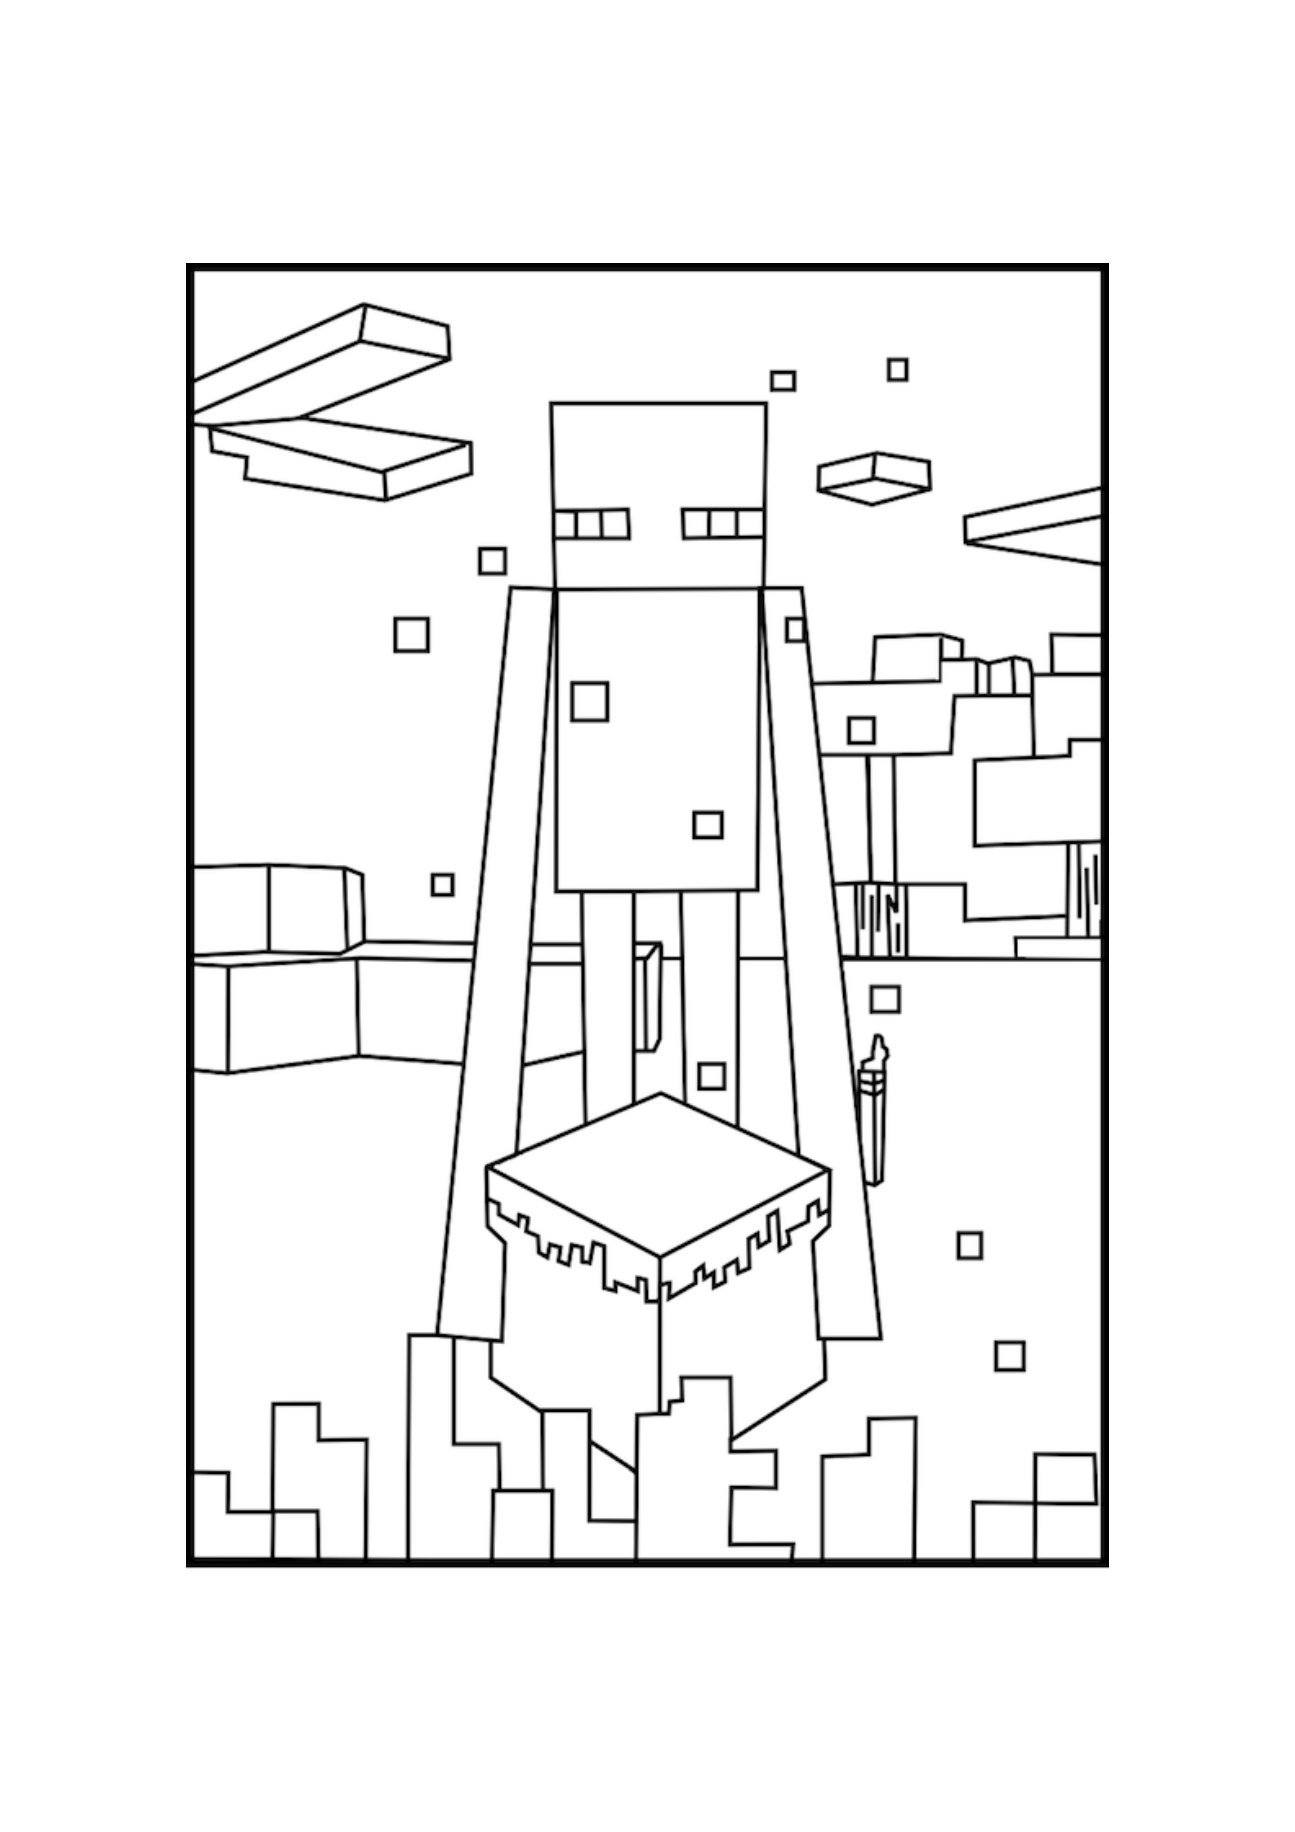 Minecraft Enderman Downloadable Minecraft Coloring Picture